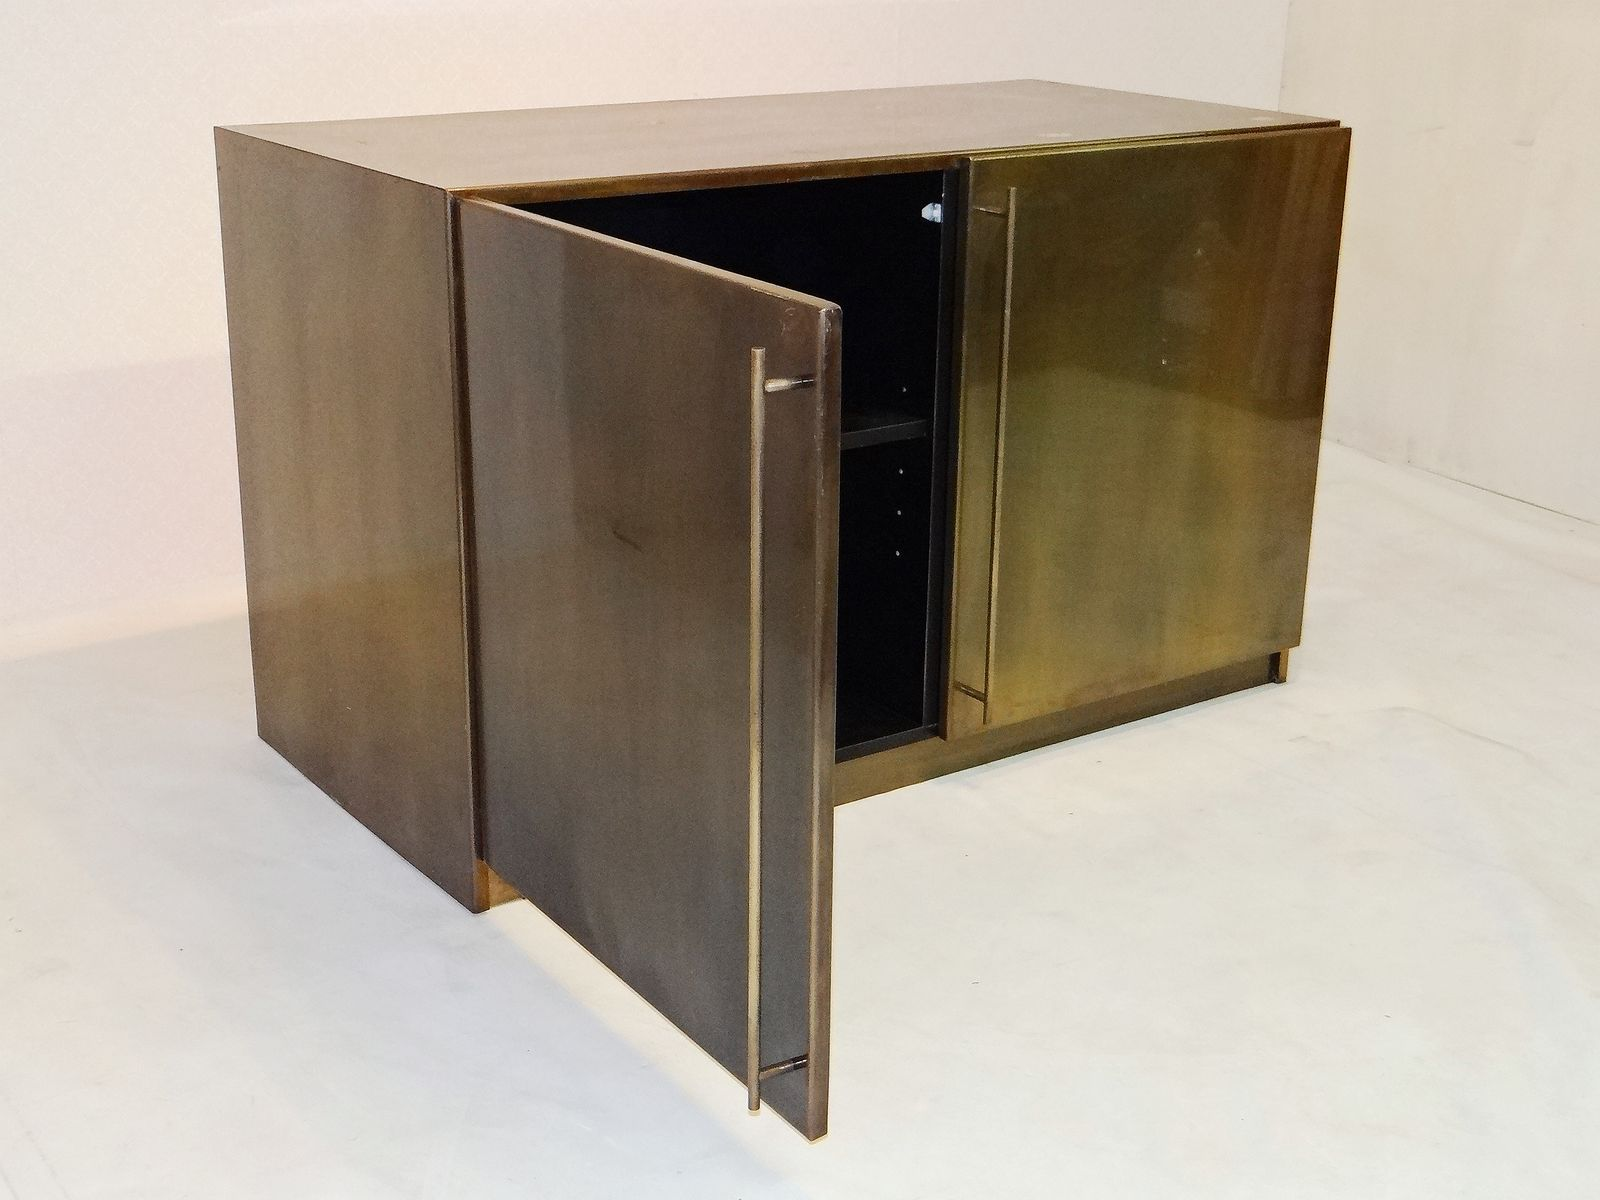 Vintage Copper And Metal Cabinet From Belgochrom For Sale At Pamono